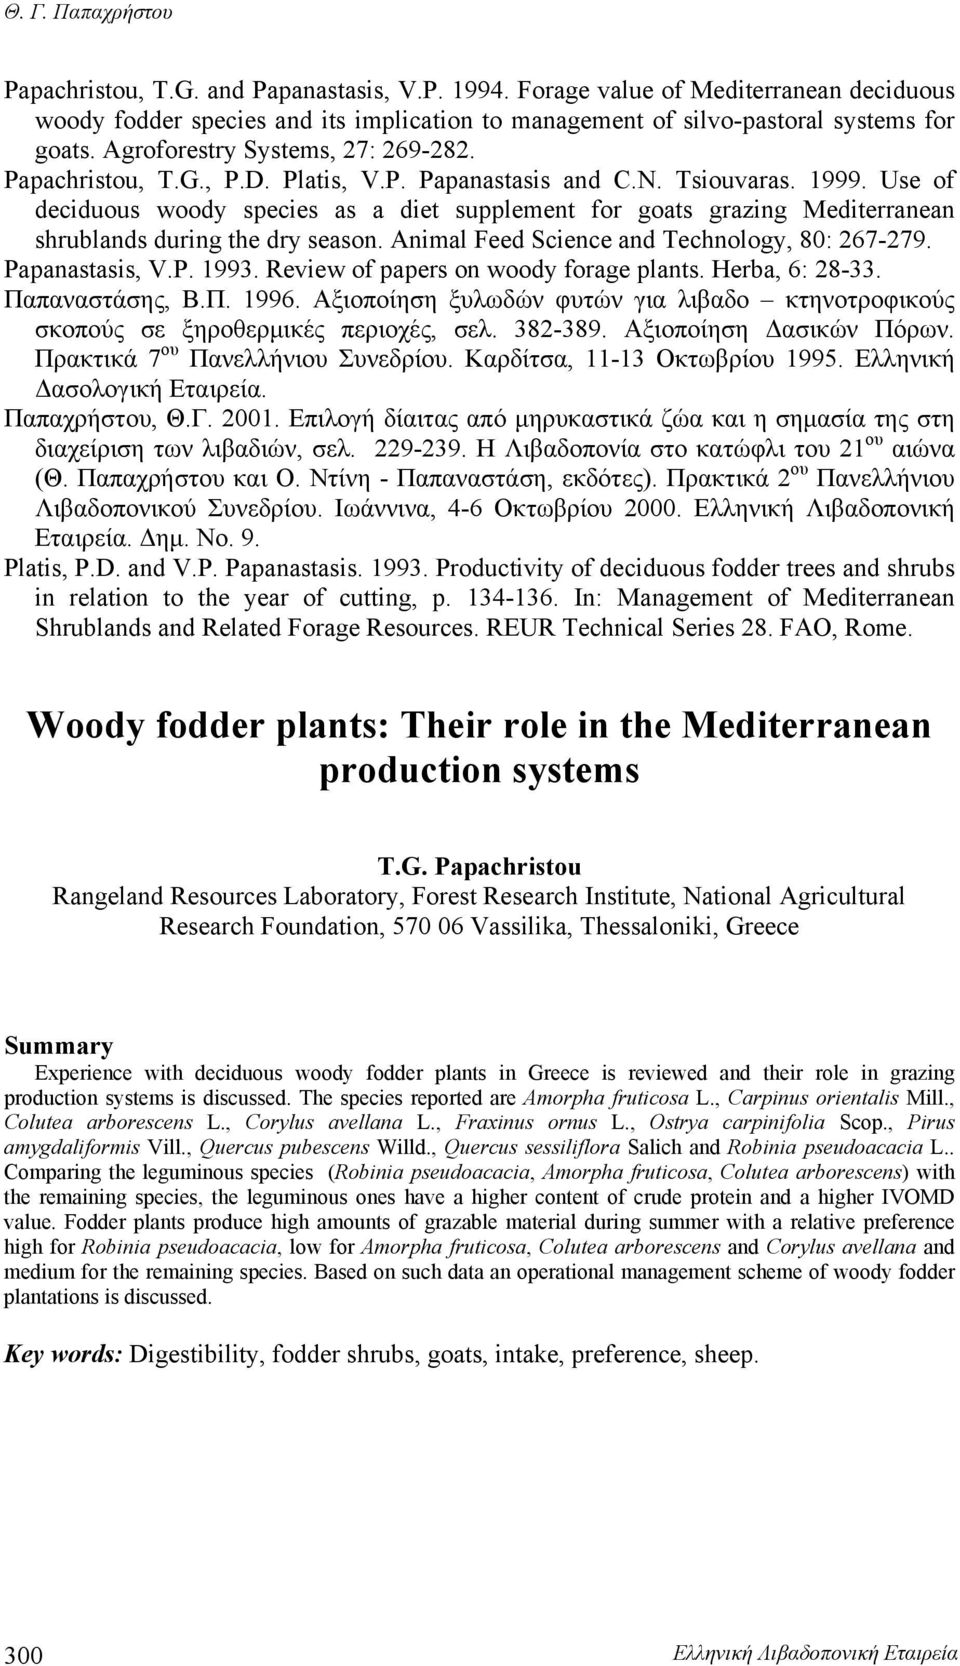 Use of deciduous woody species as a diet supplement for goats grazing Mediterranean shrublands during the dry season. Animal Feed Science and Technology, 80: 267-279. Papanastasis, V.P. 1993.